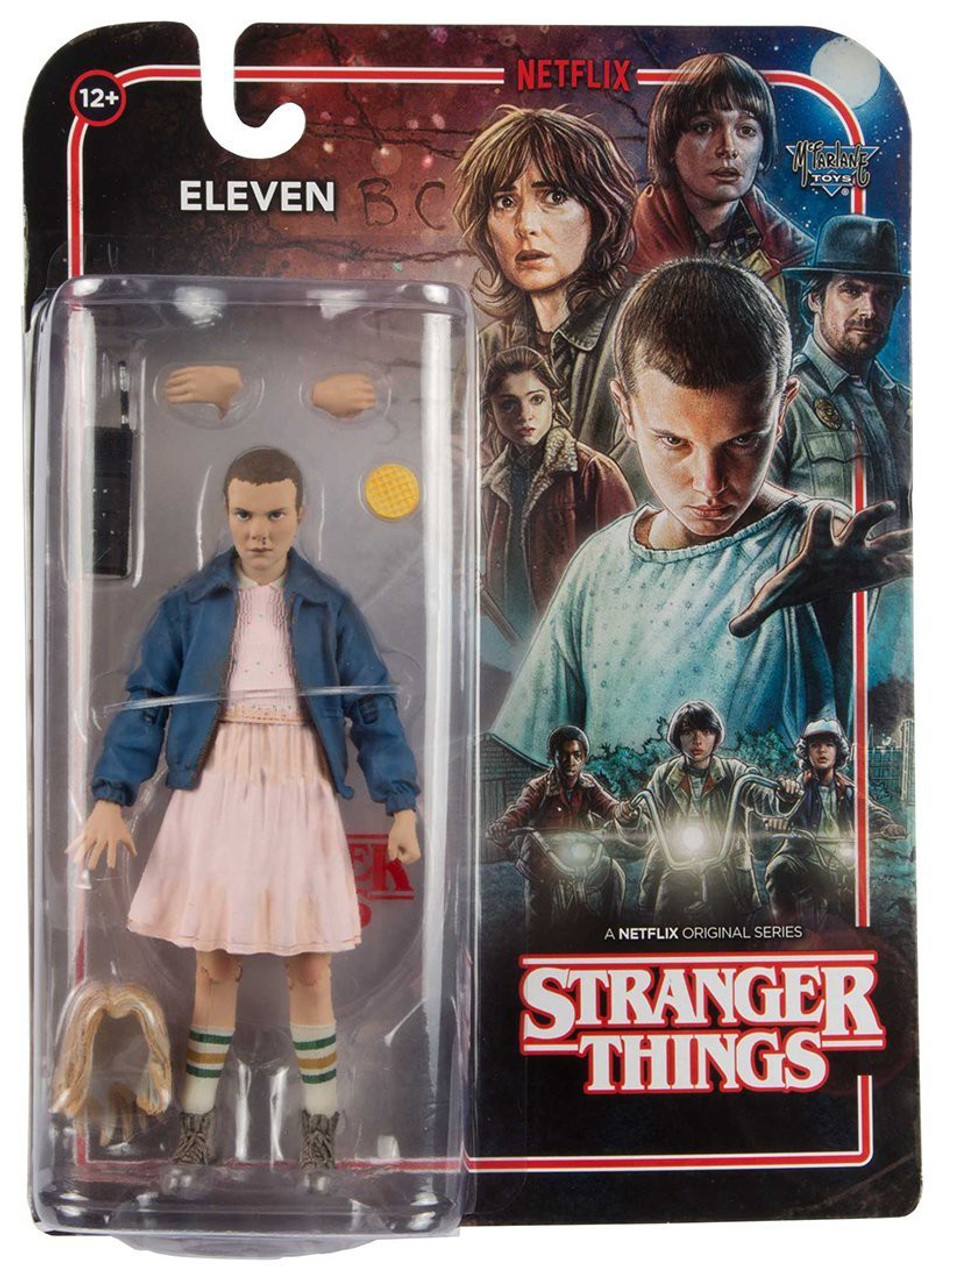 "BARB 6/"" ACTION FIGURE MCFARLANE STRANGER THINGS SERIES 3 IN STOCK EXCLUSIVE"